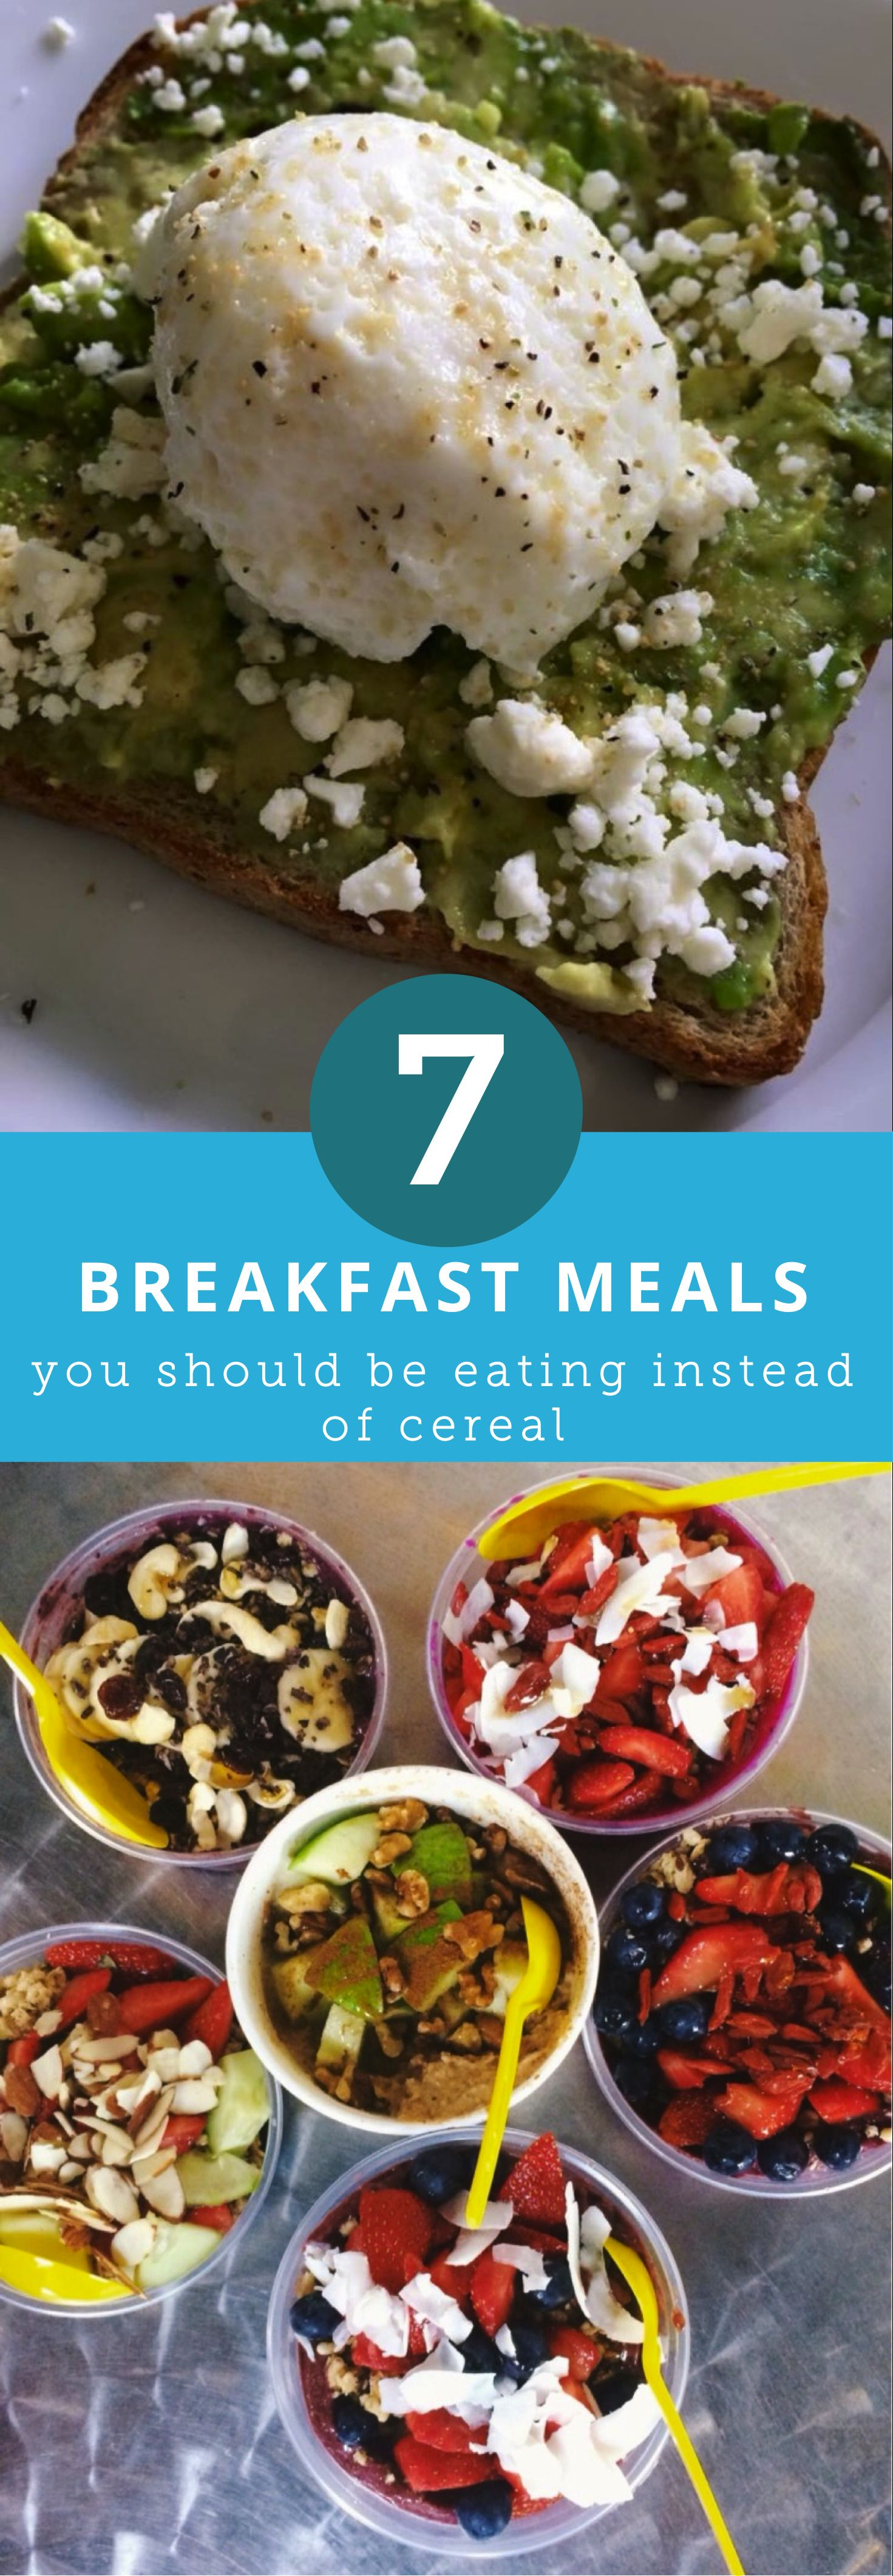 7 breakfast meals you should be eating instead of cereal